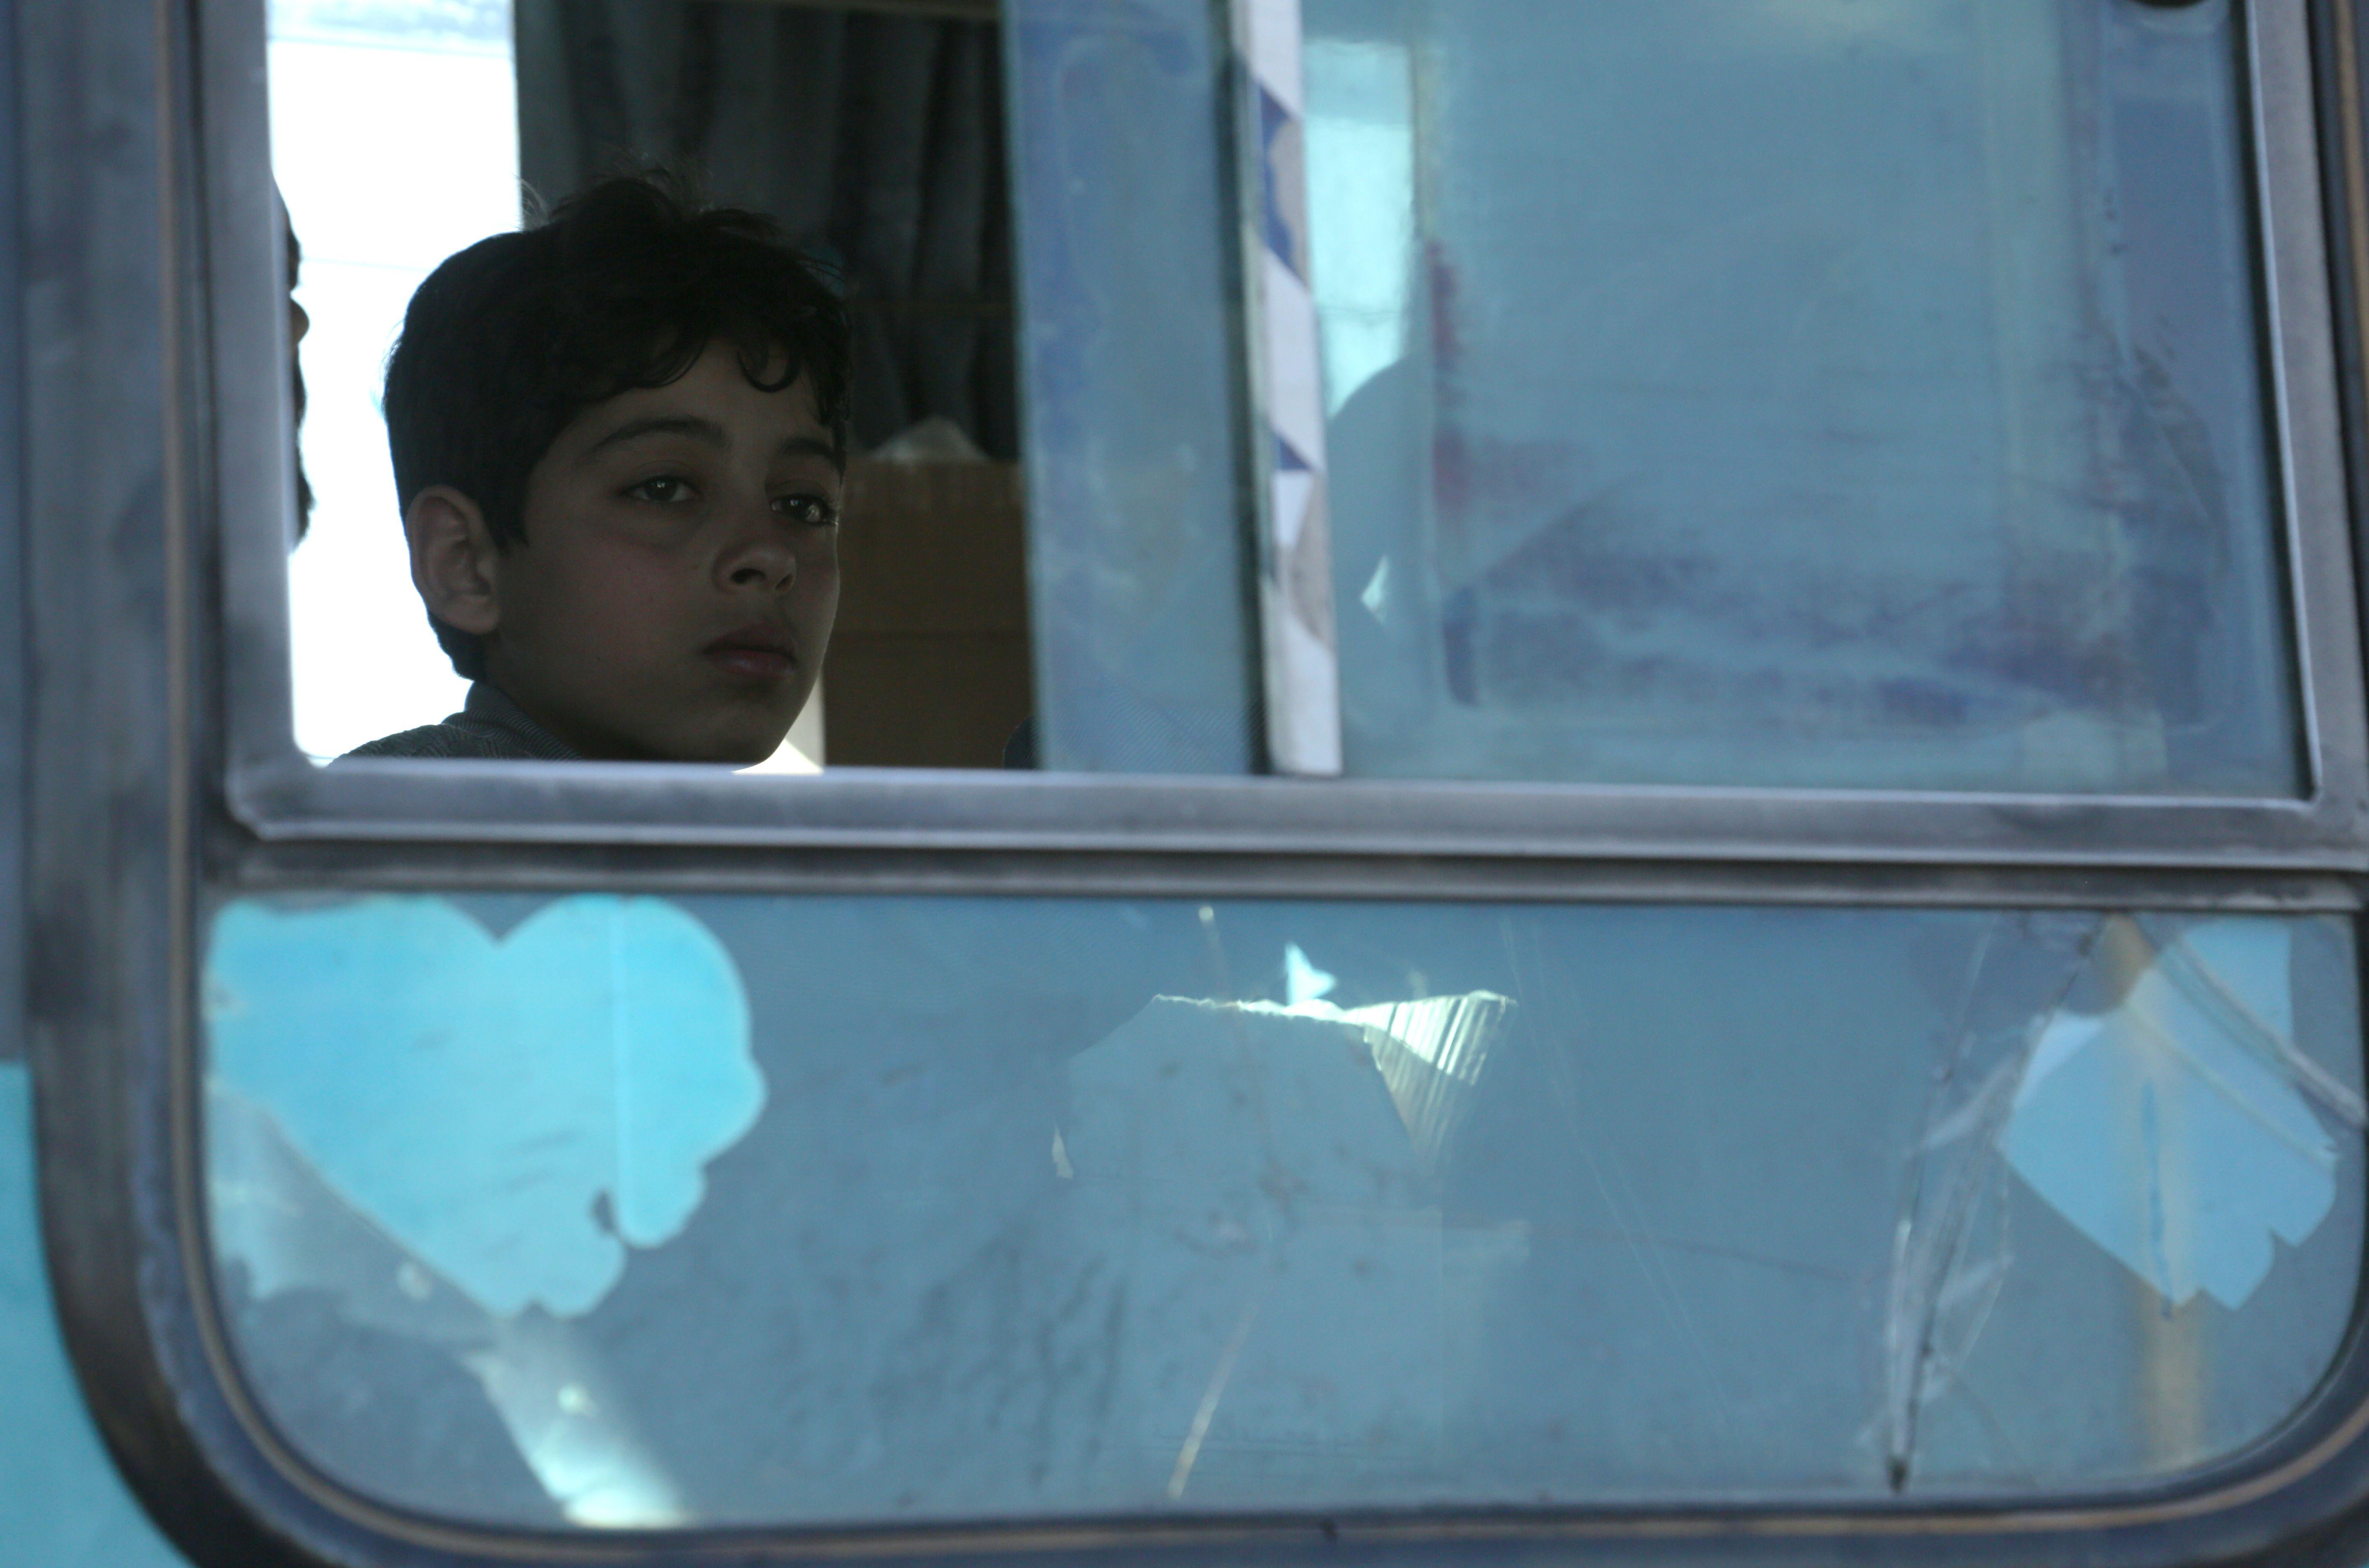 A Syrian child looks out a bus window.